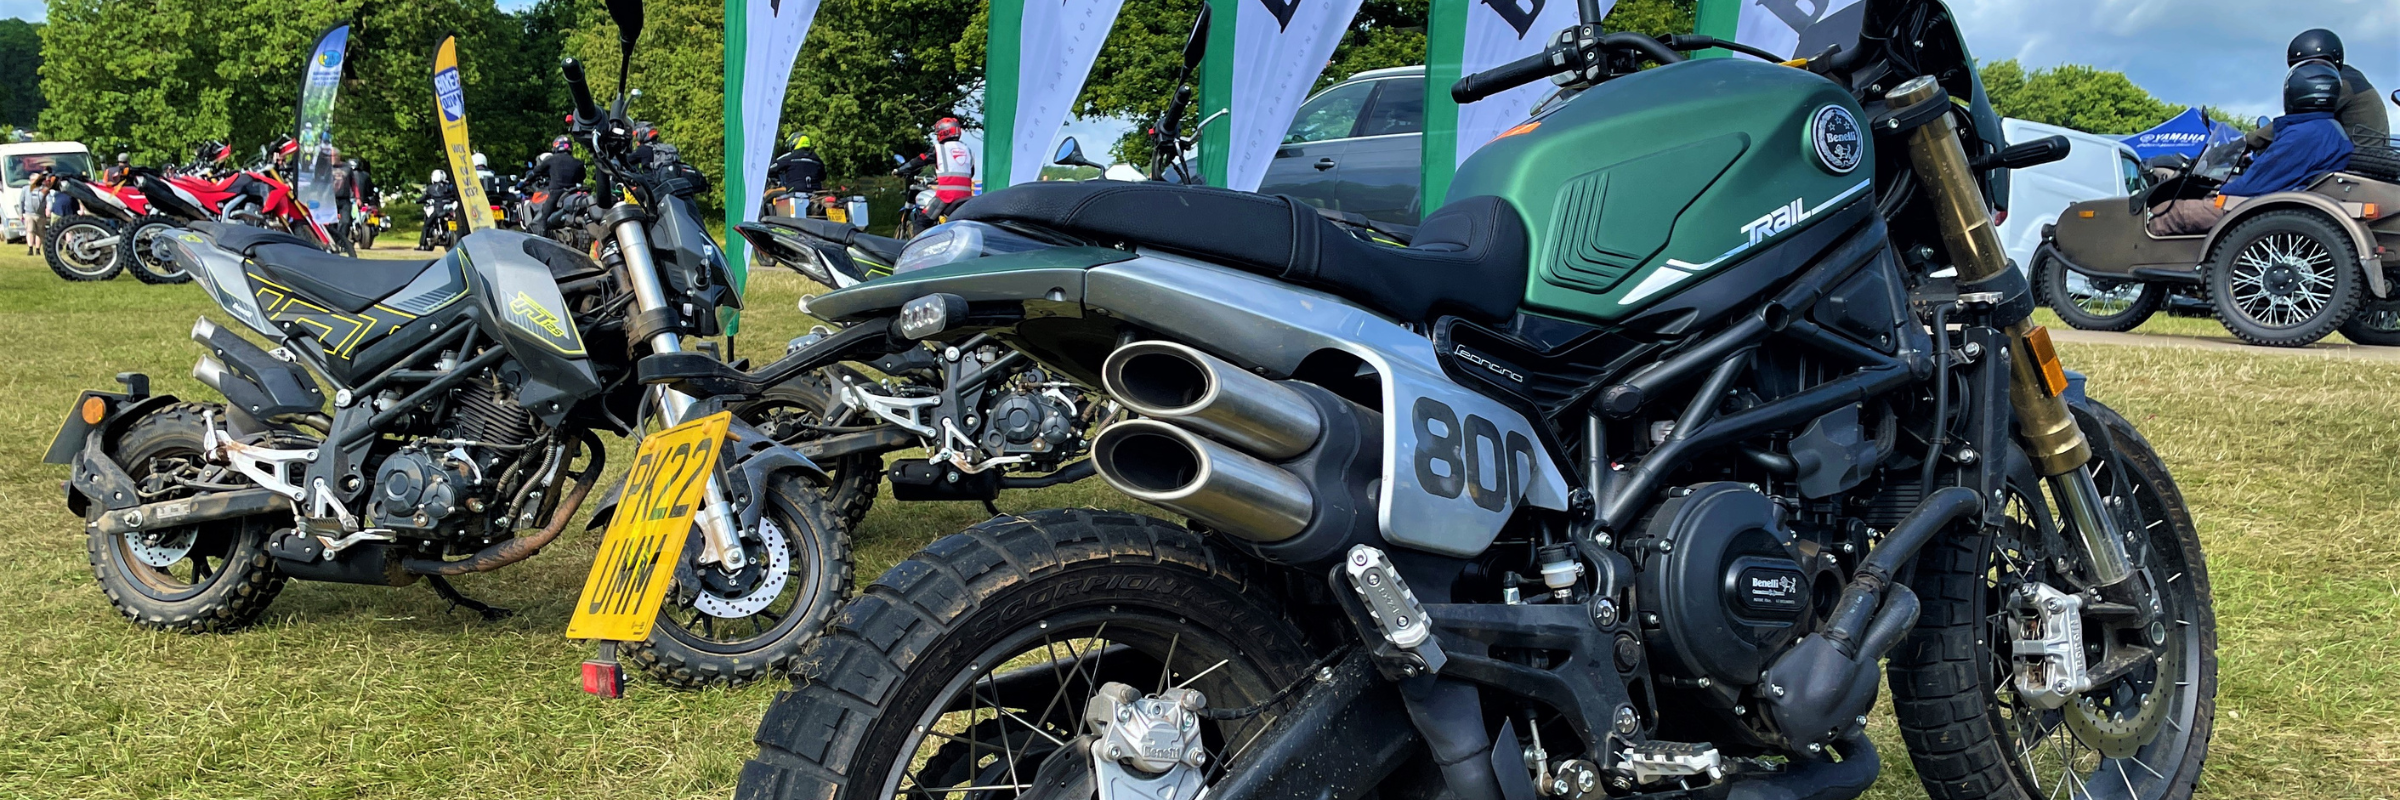 Benelli TNT - 125 reasons to Grin